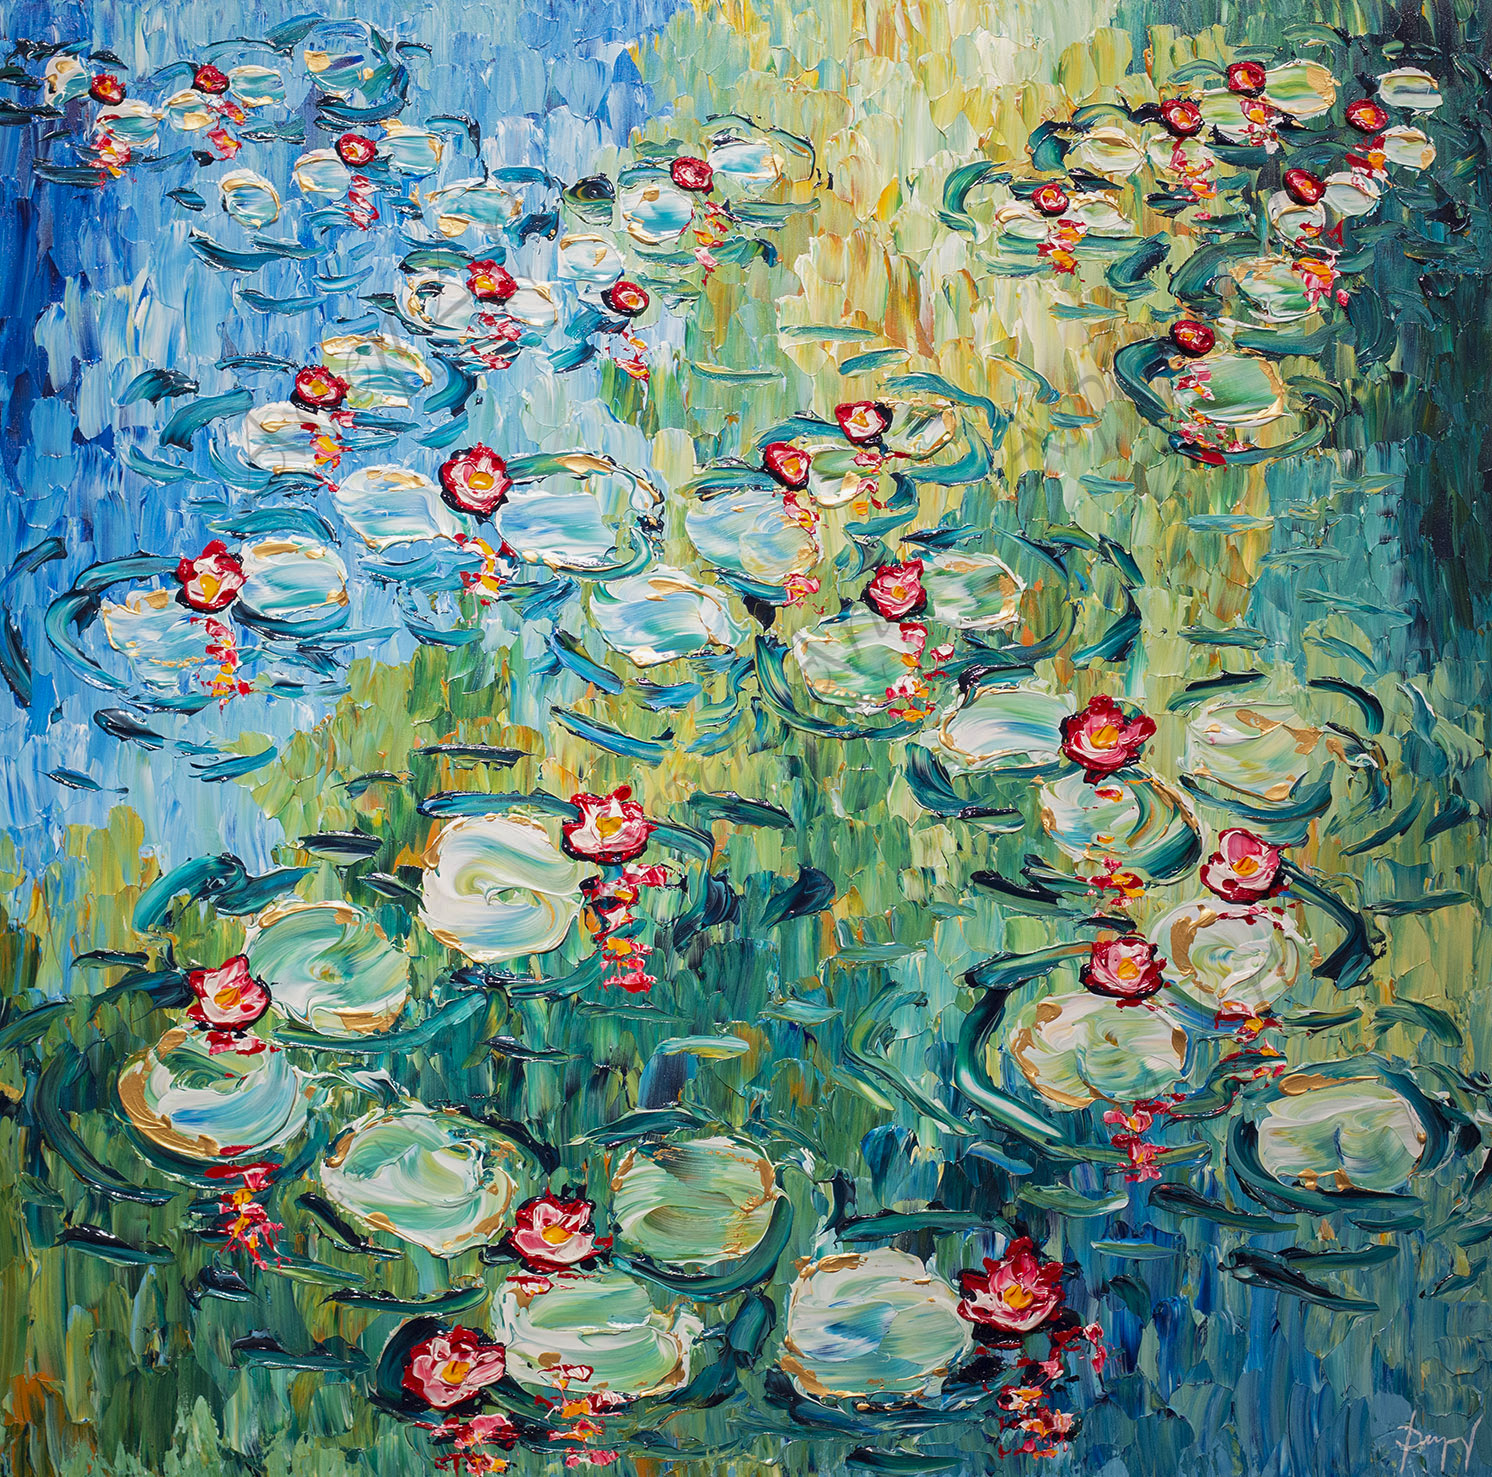 Graceful Water Lilies of Abundant Colors 48x48